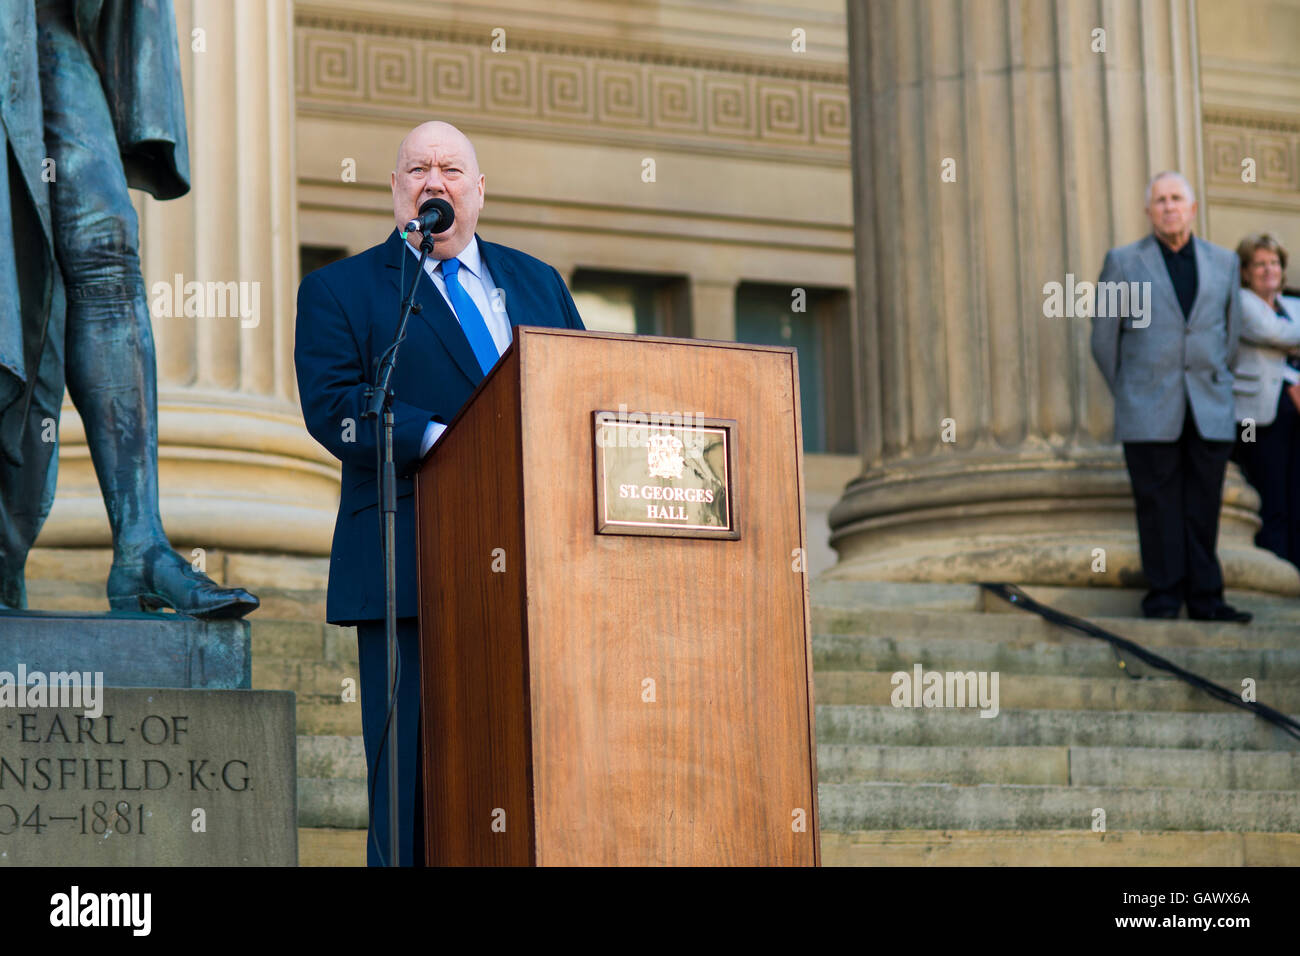 Liverpool, UK, 5th June 2016. Mayor of Liverpool Joe Anderson speaks at the  'Stand together Liverpool' rally at - Stock Image